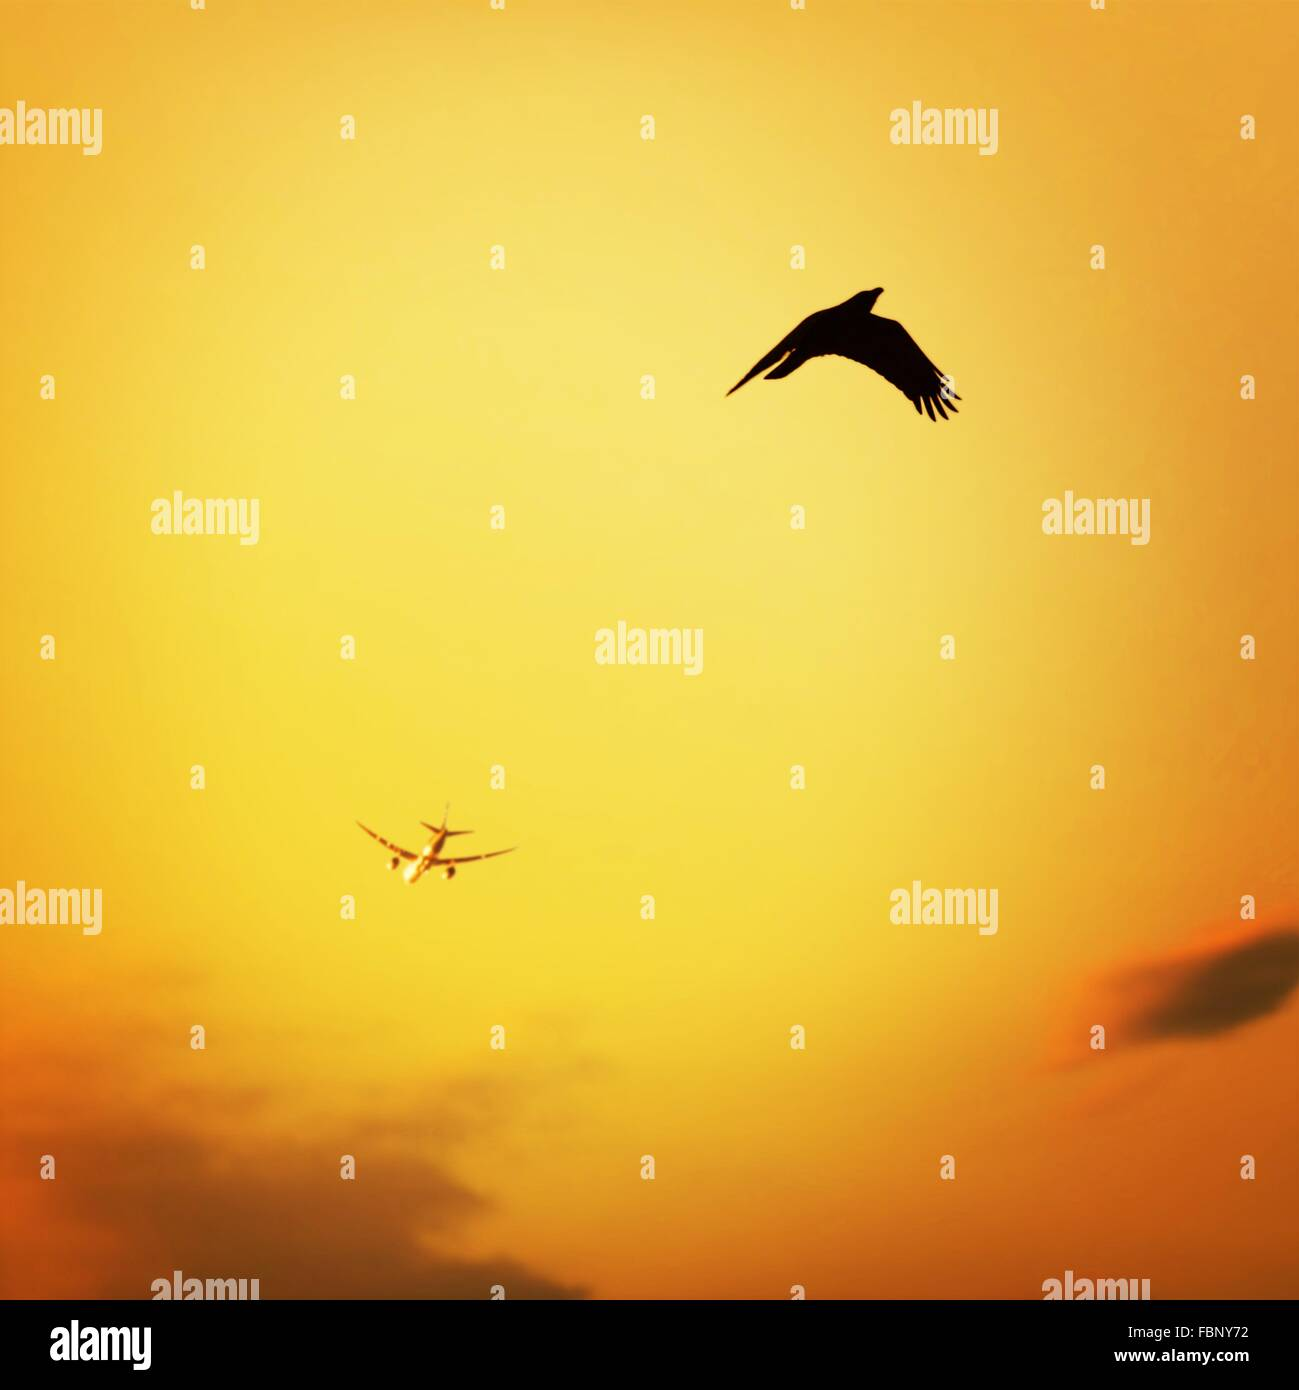 Low Angle View Of Airplane And Silhouette Bird Flying Against Orange Sky At Sunset - Stock Image